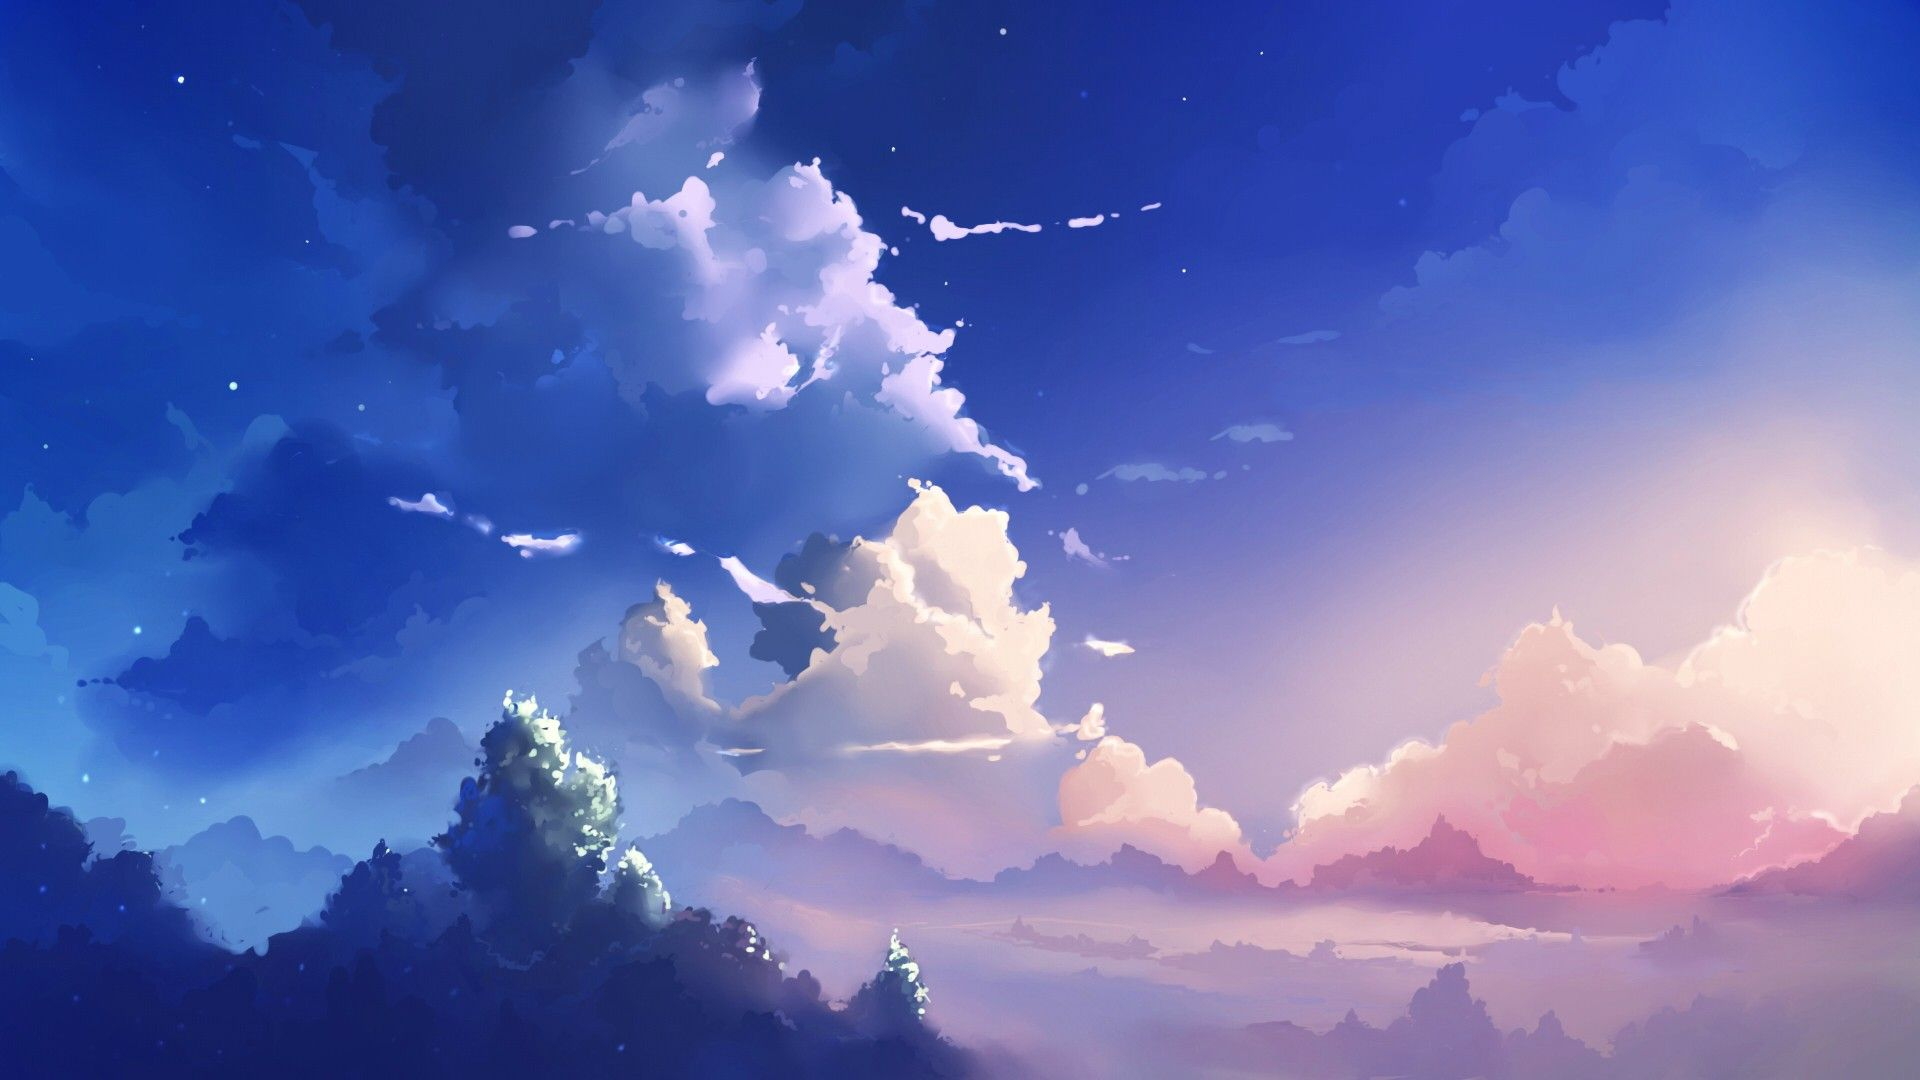 Anime Scenery Wallpaper Anime Scenery Wallpaper Anime